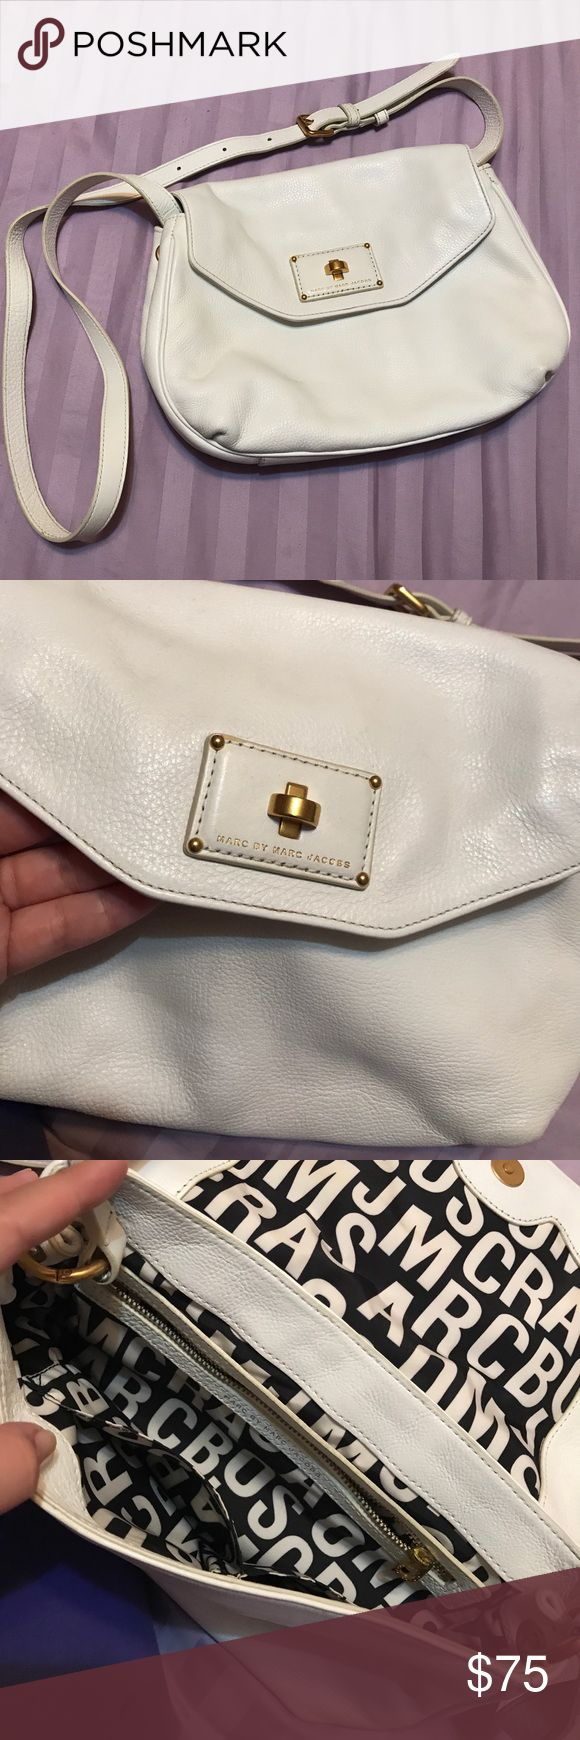 White Marc Jacobs Purse Snap closure. Adjustable shoulder strap. Hardly uses perfect condition! Marc Jacobs Bags